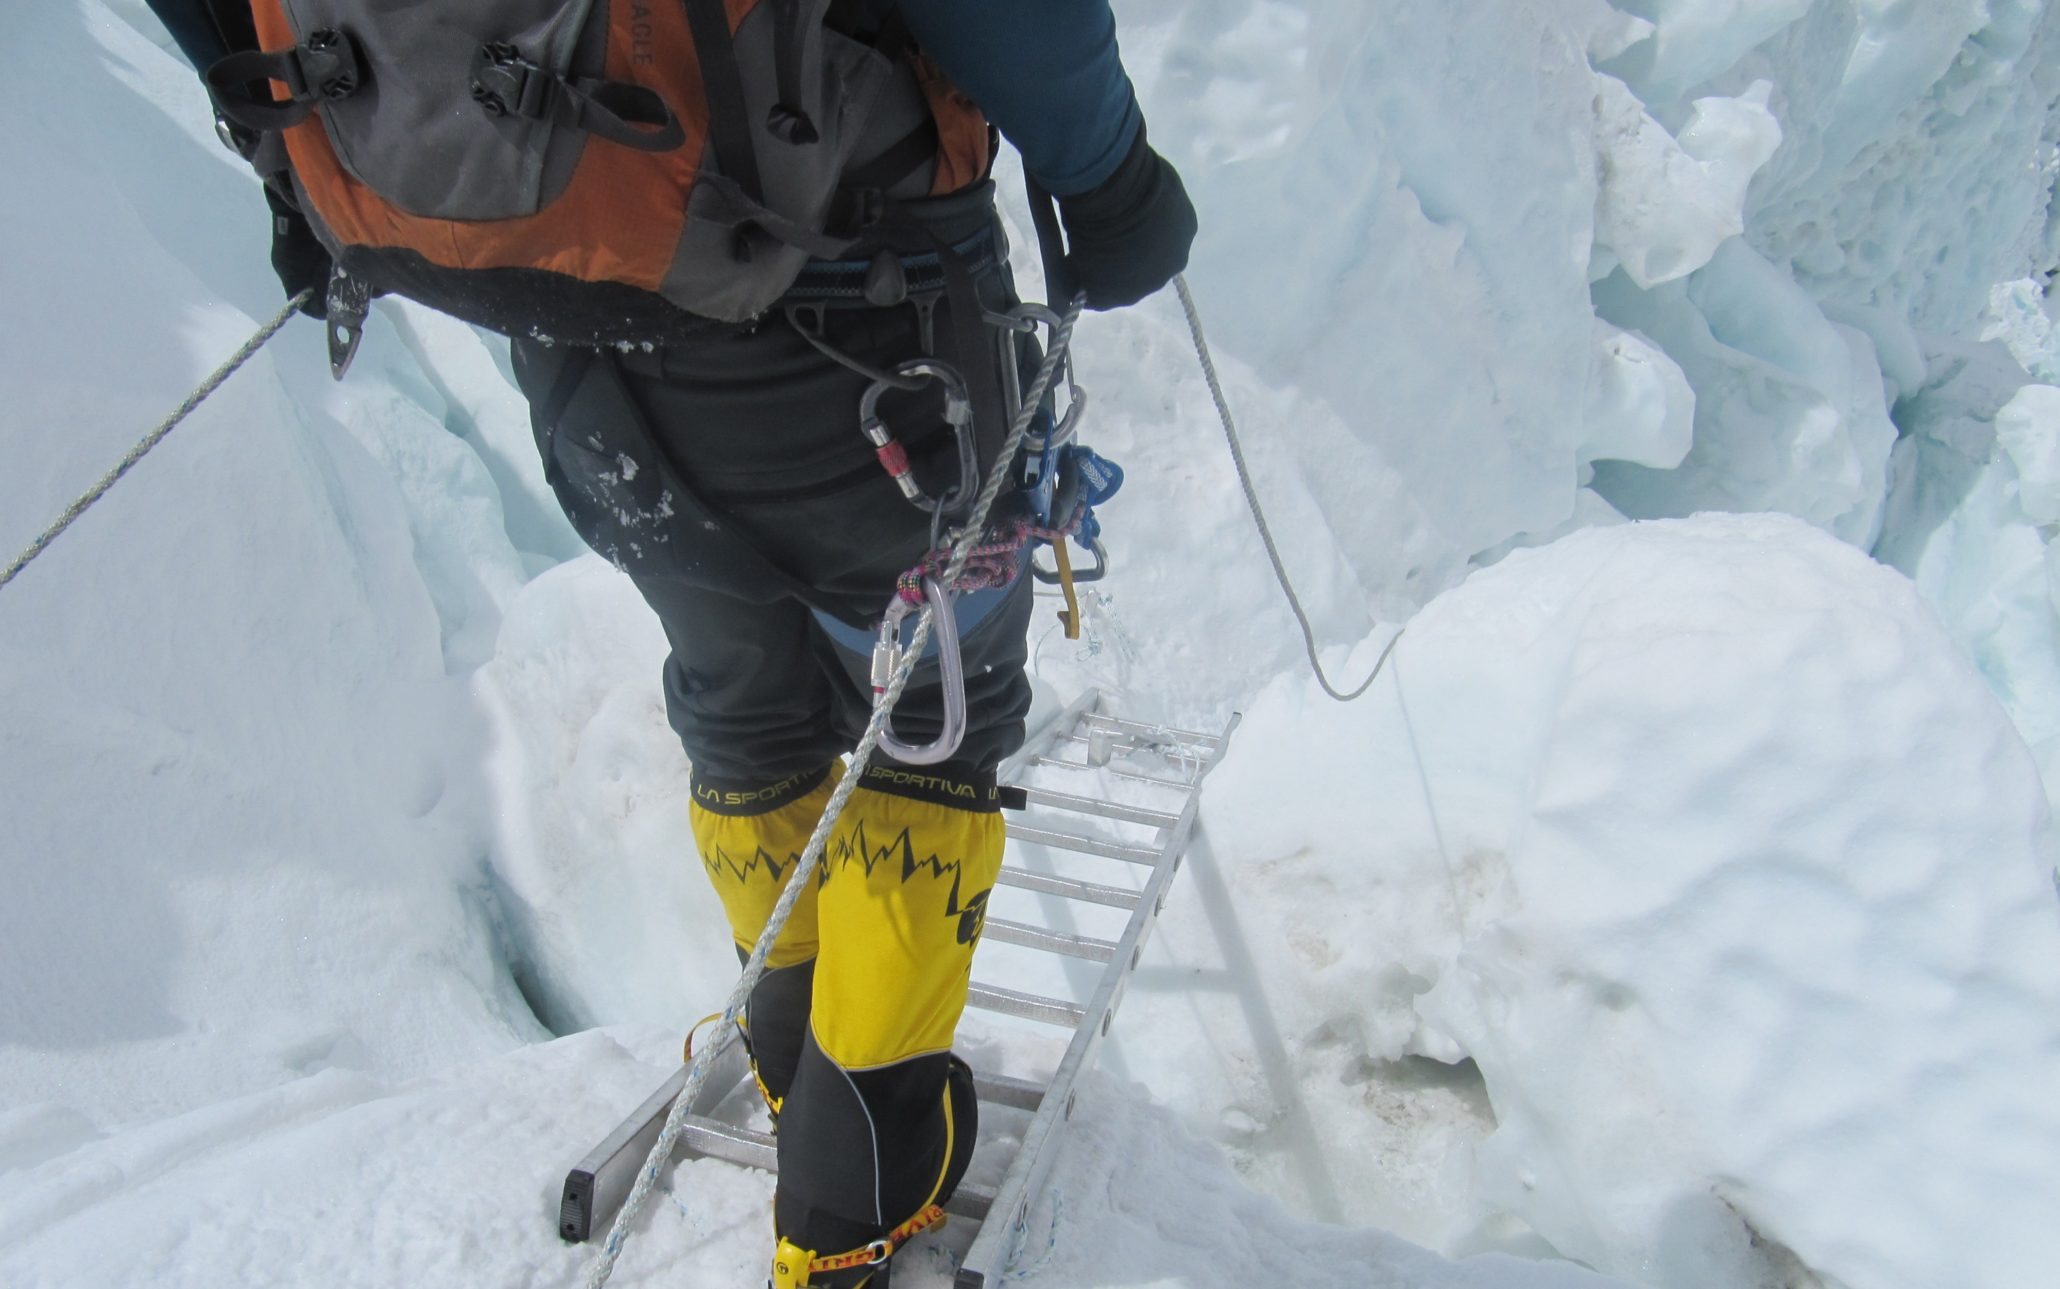 himalayan moutaineer crossing icefall with a ladder